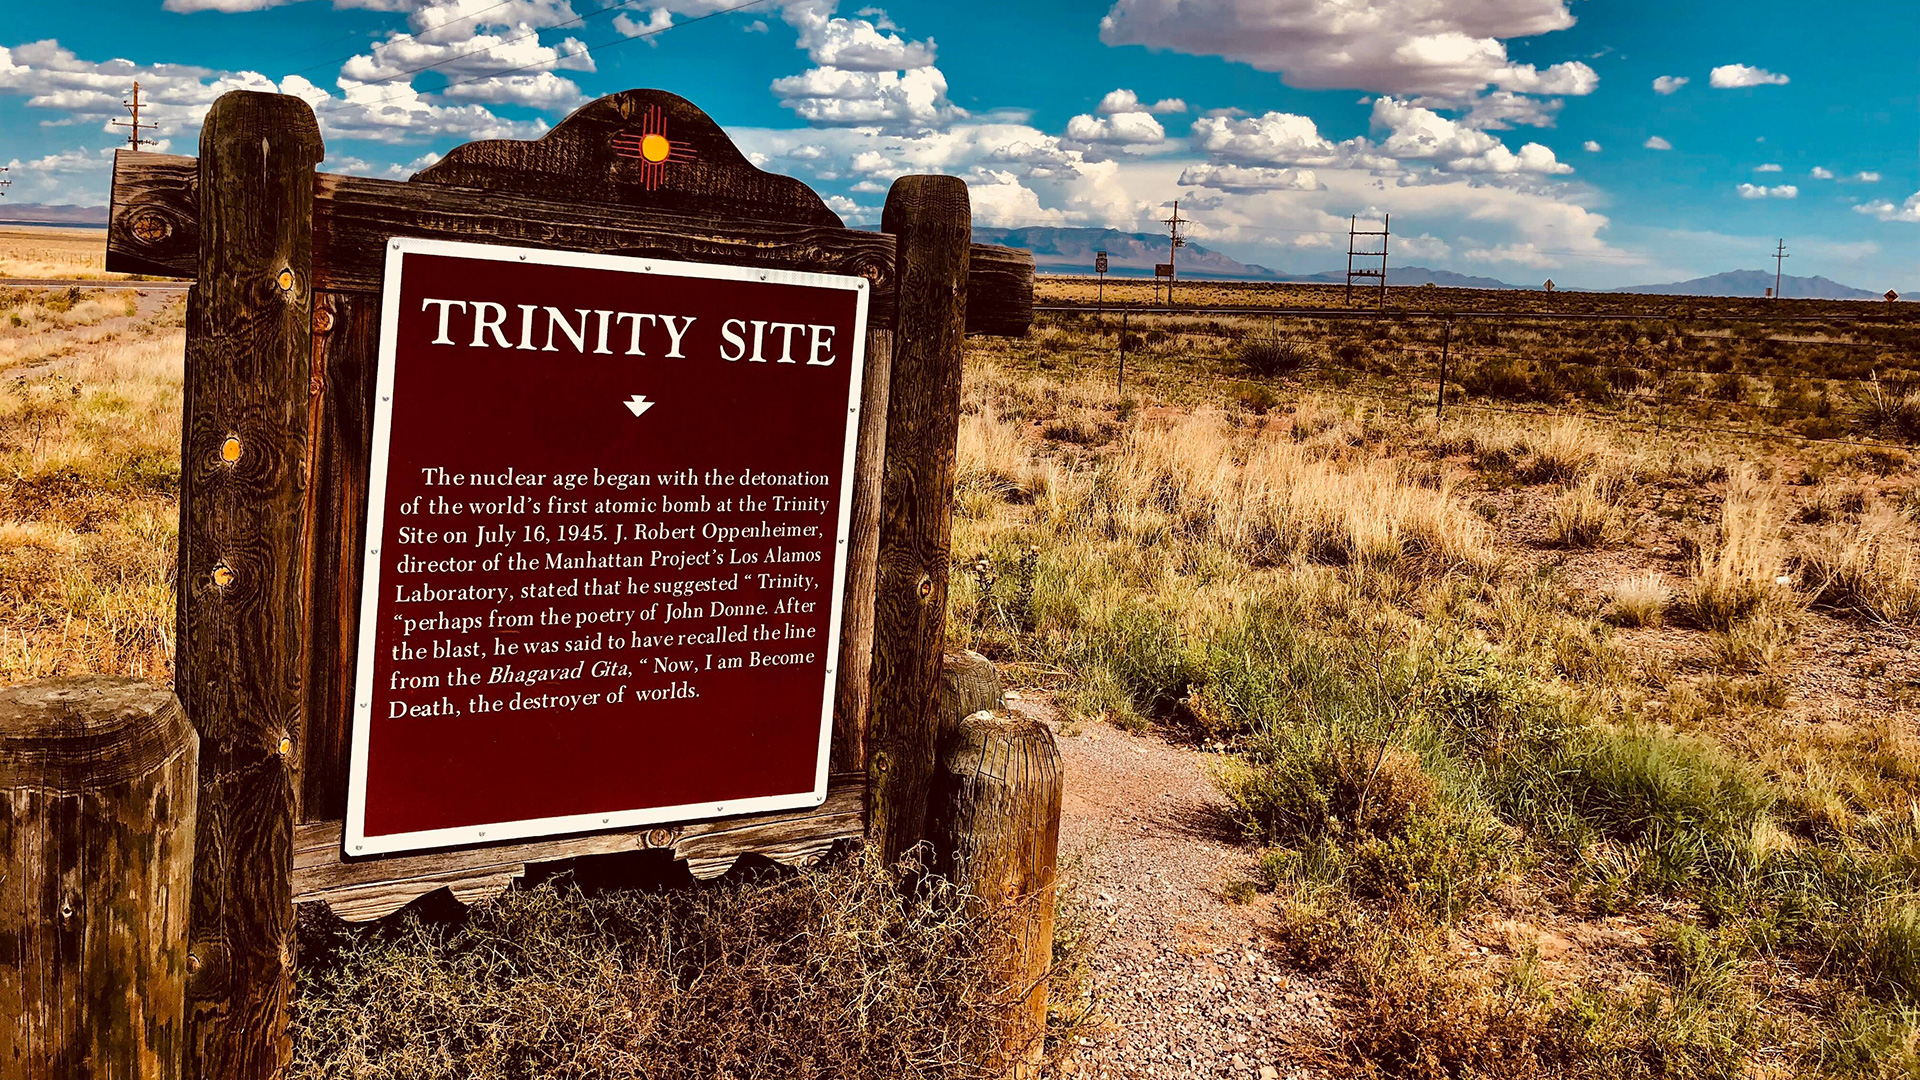 Reservations Open for October 2021 Trinity Site Tour